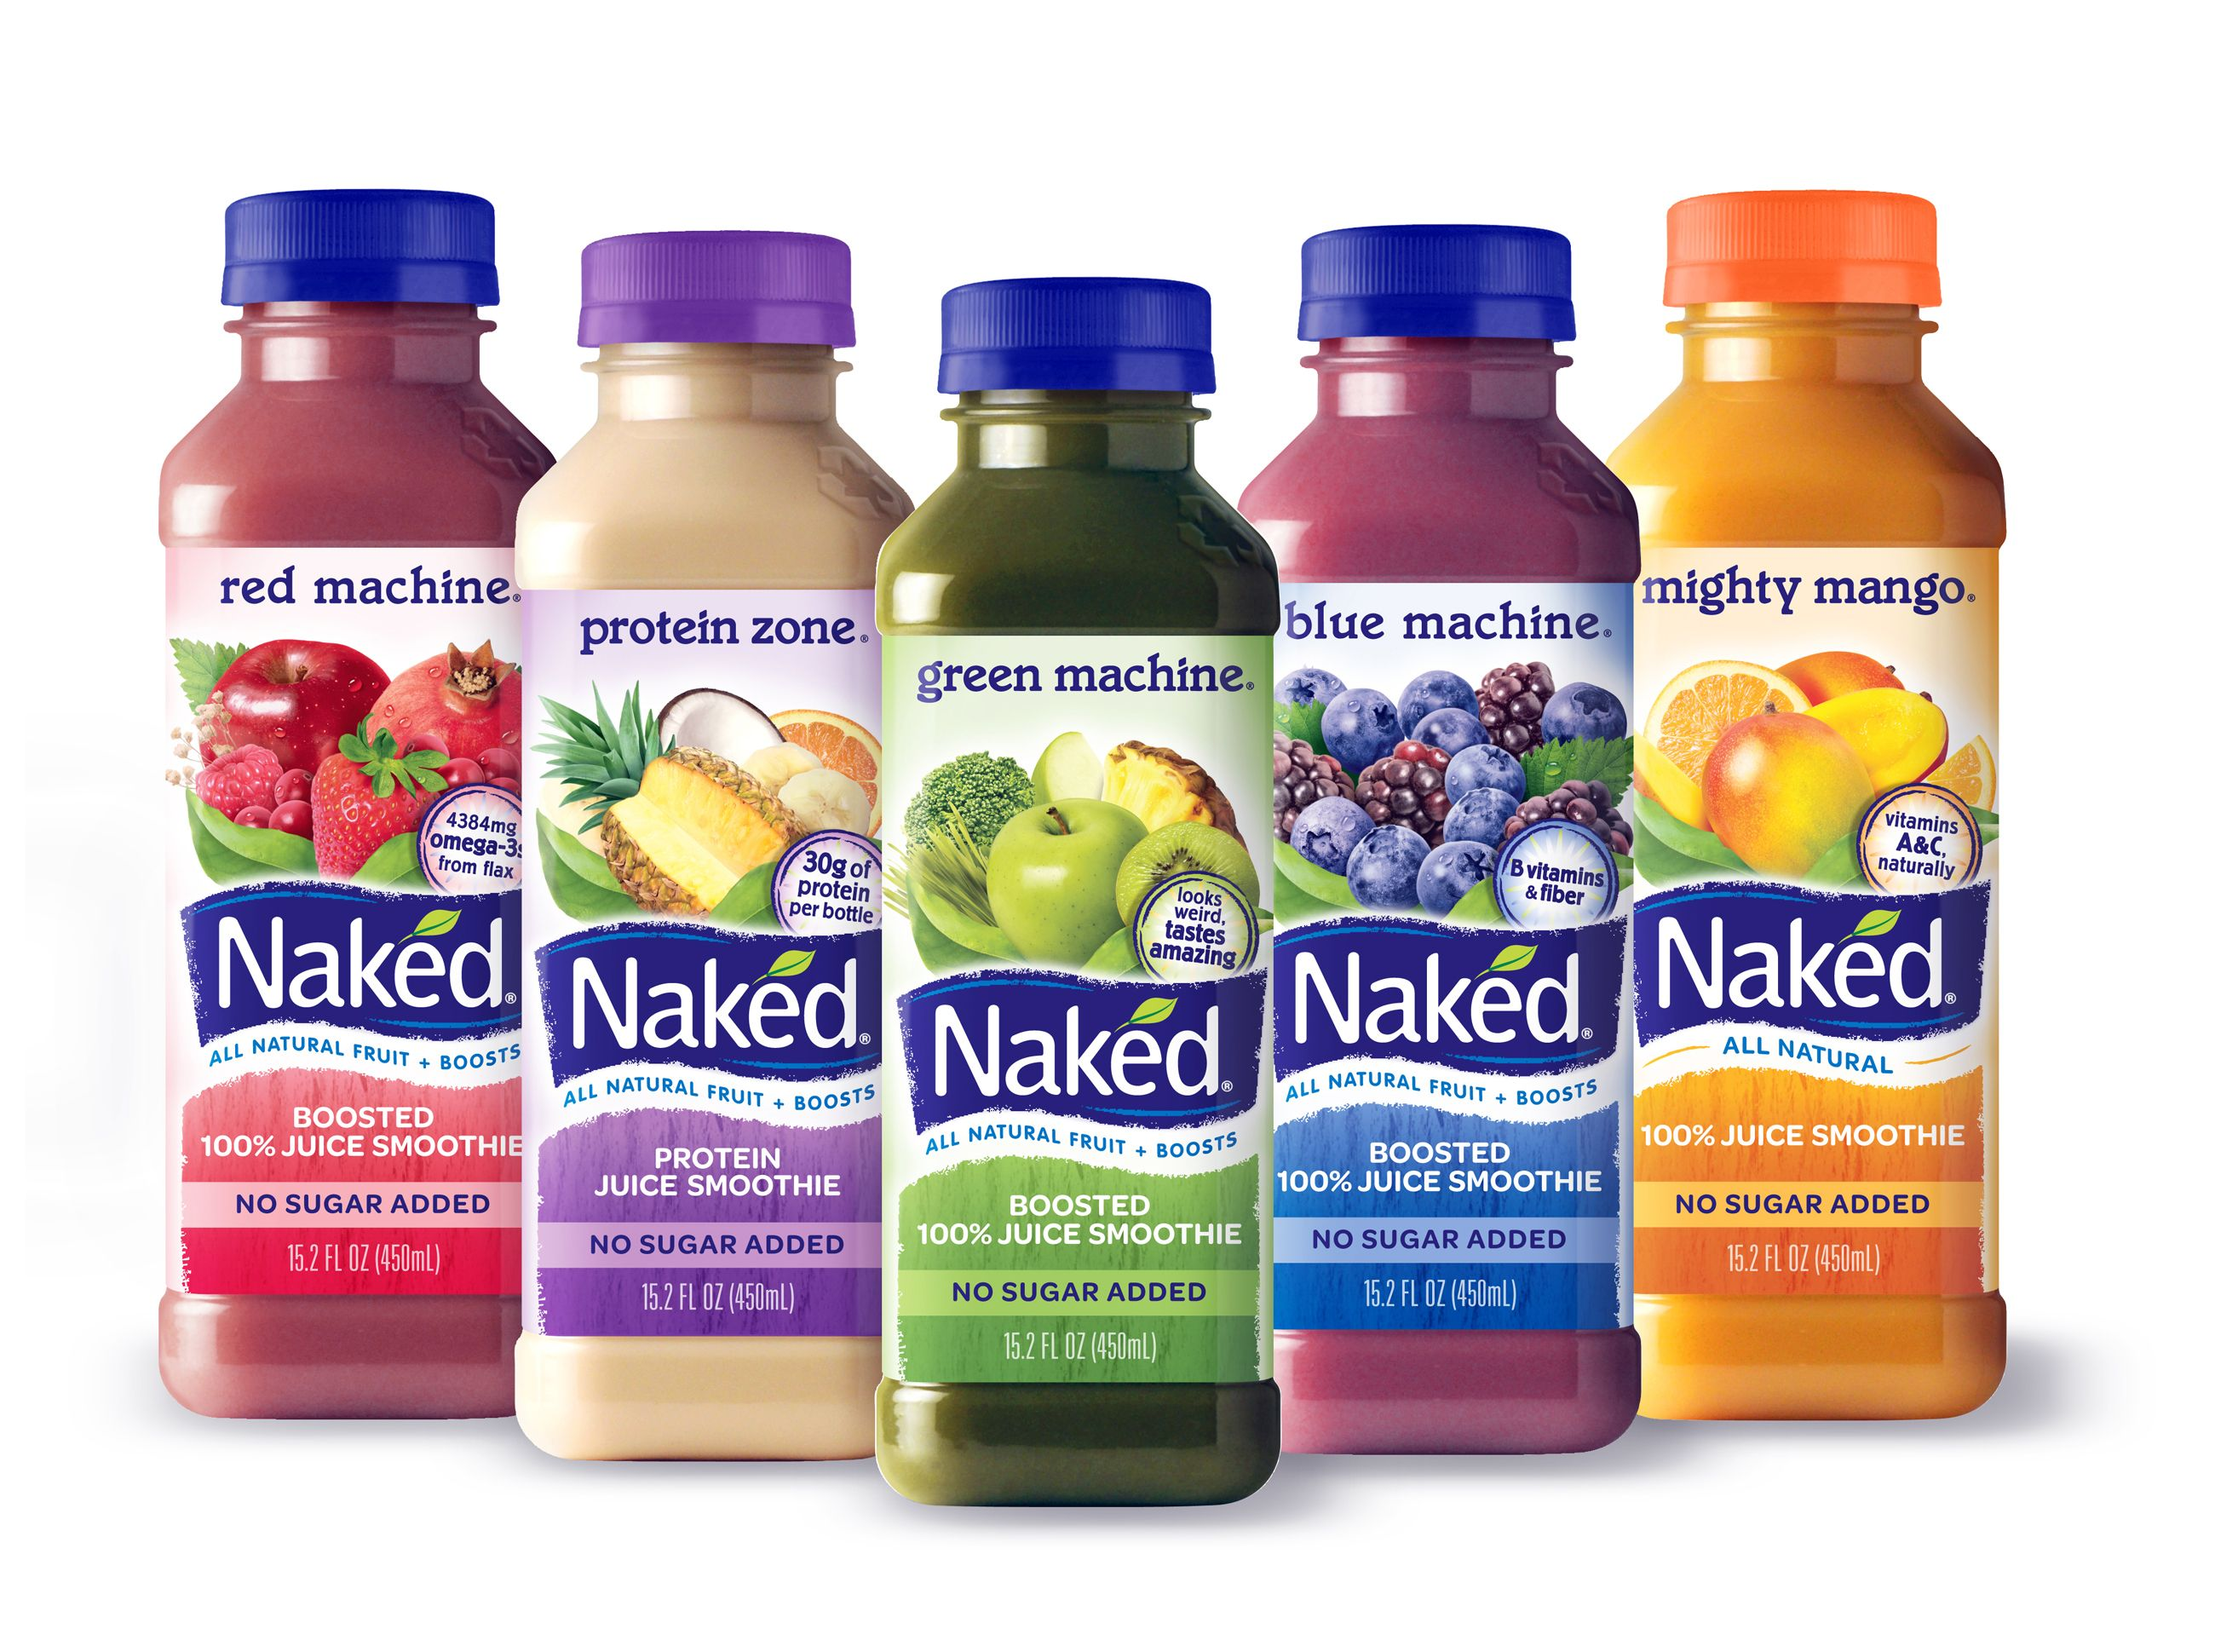 Naked Juice I Work Out Smoothie Drinks Juice Maker Juice Smoothie